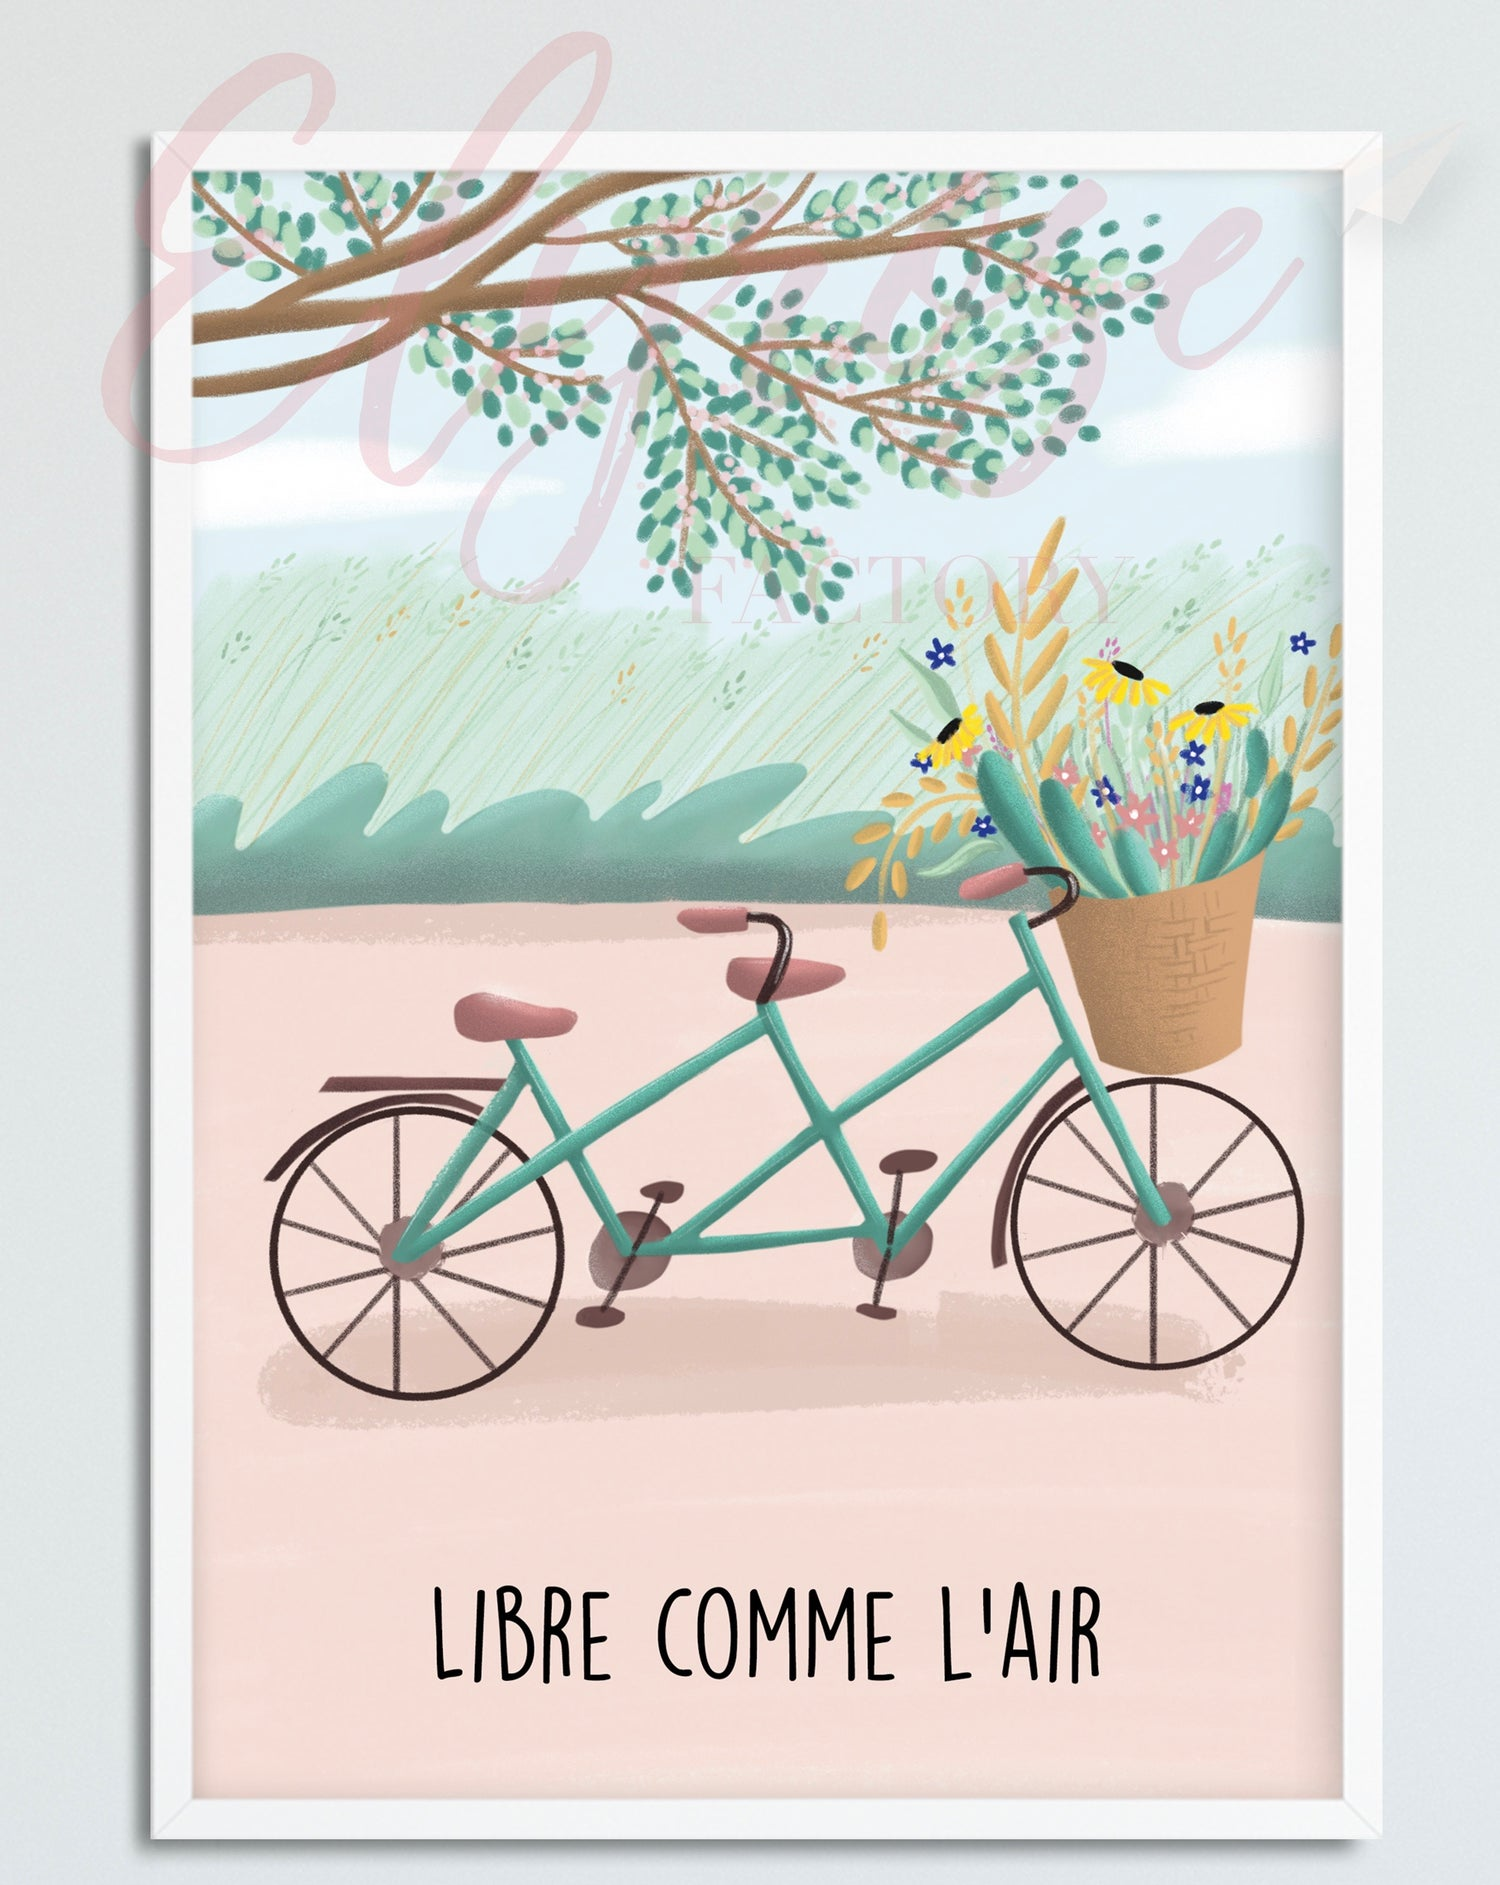 Image of Affiche Libre comme l'air